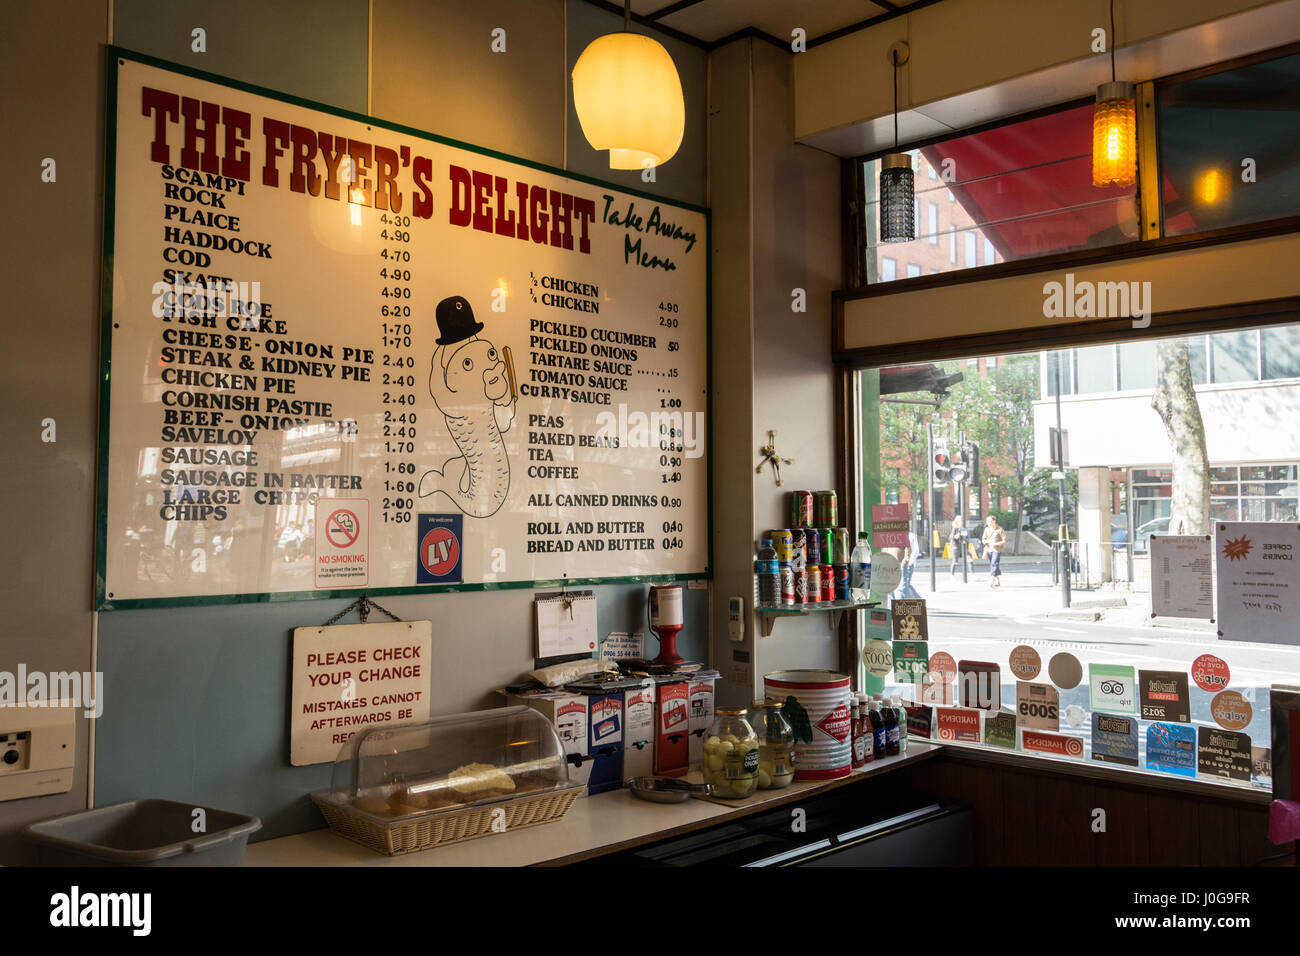 Interior Of The Fryer S Delight Fish And Chip Shop On Theobalds Rd Stock Photo Alamy